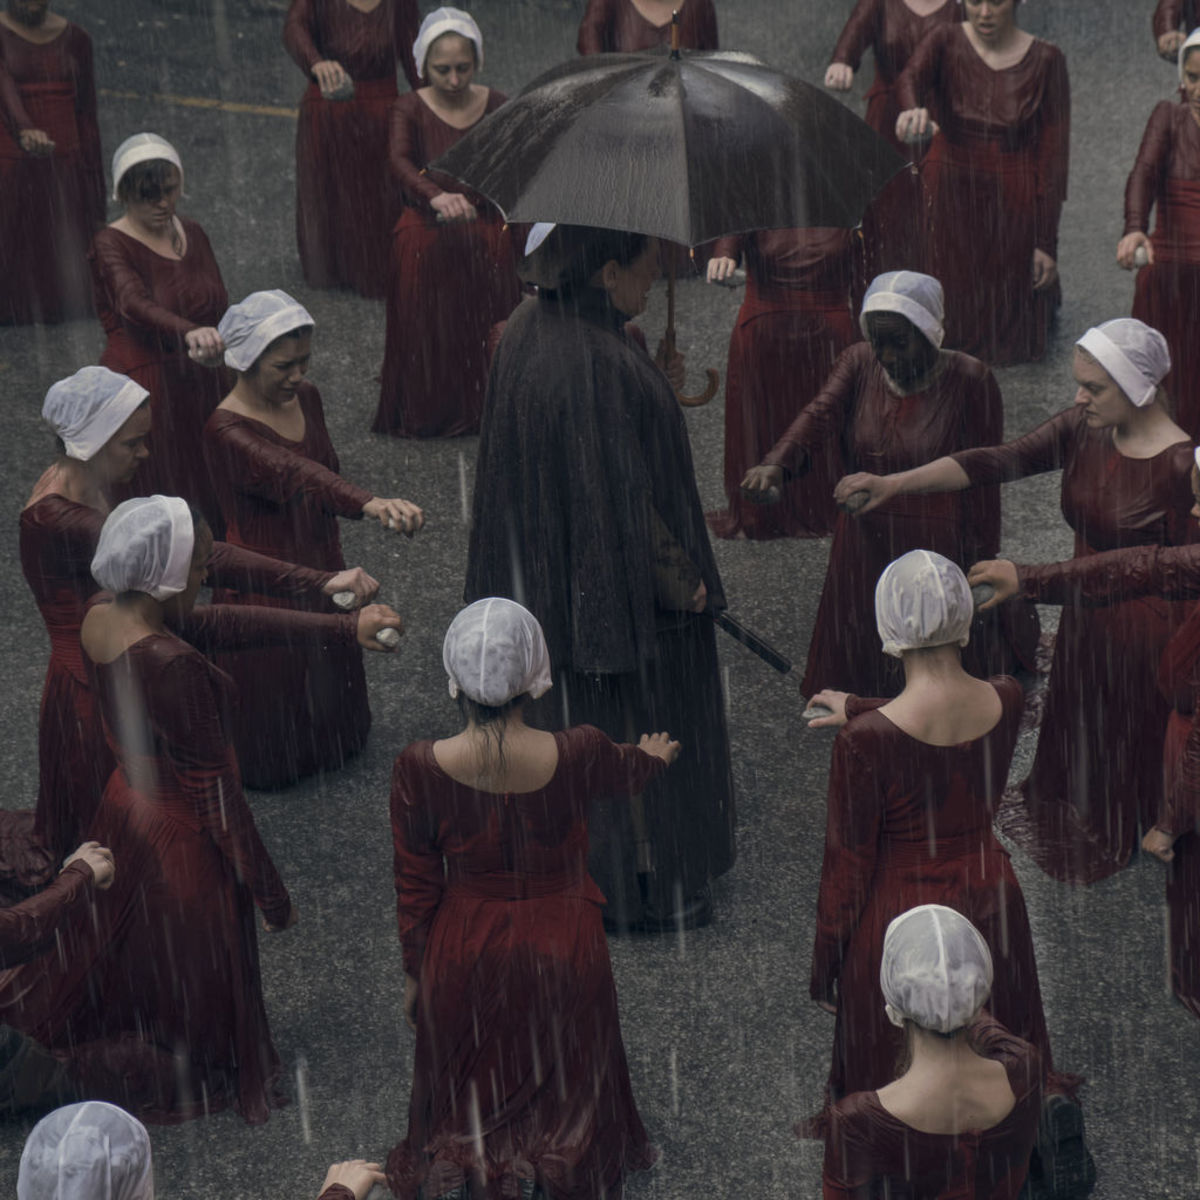 Margaret Atwood confirms The Handmaid's Tale sequel